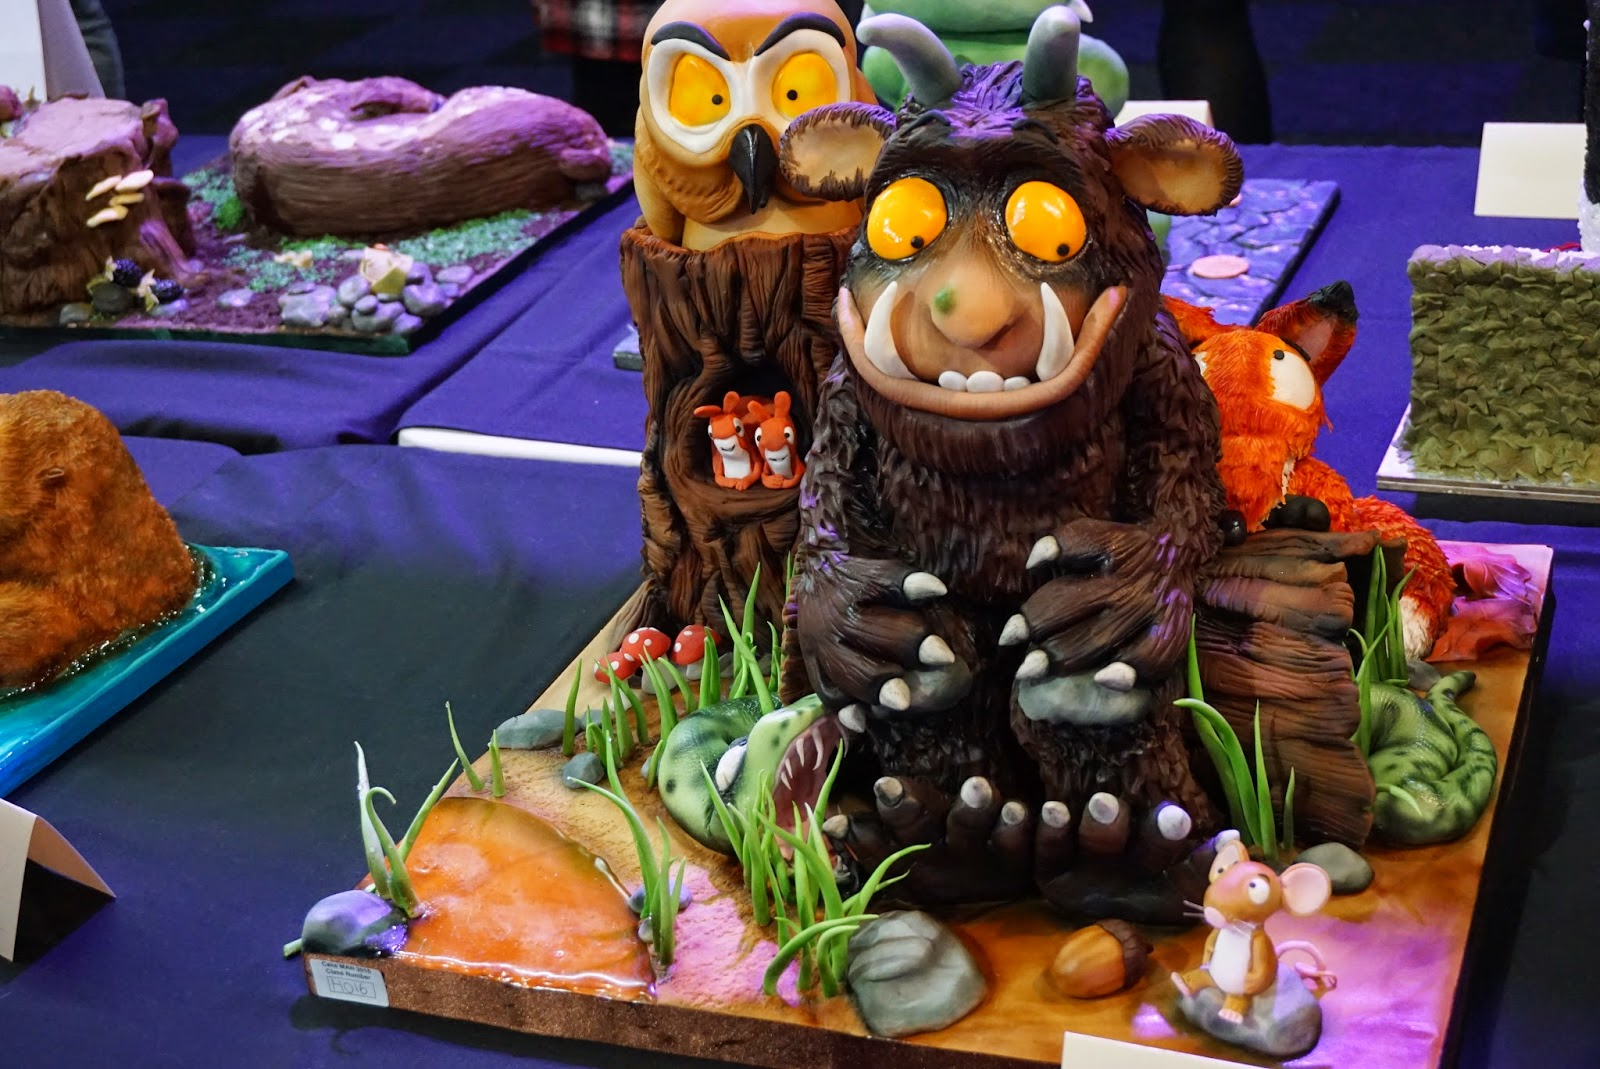 Cake International Show Manchester 2015 Gruffalo Cake